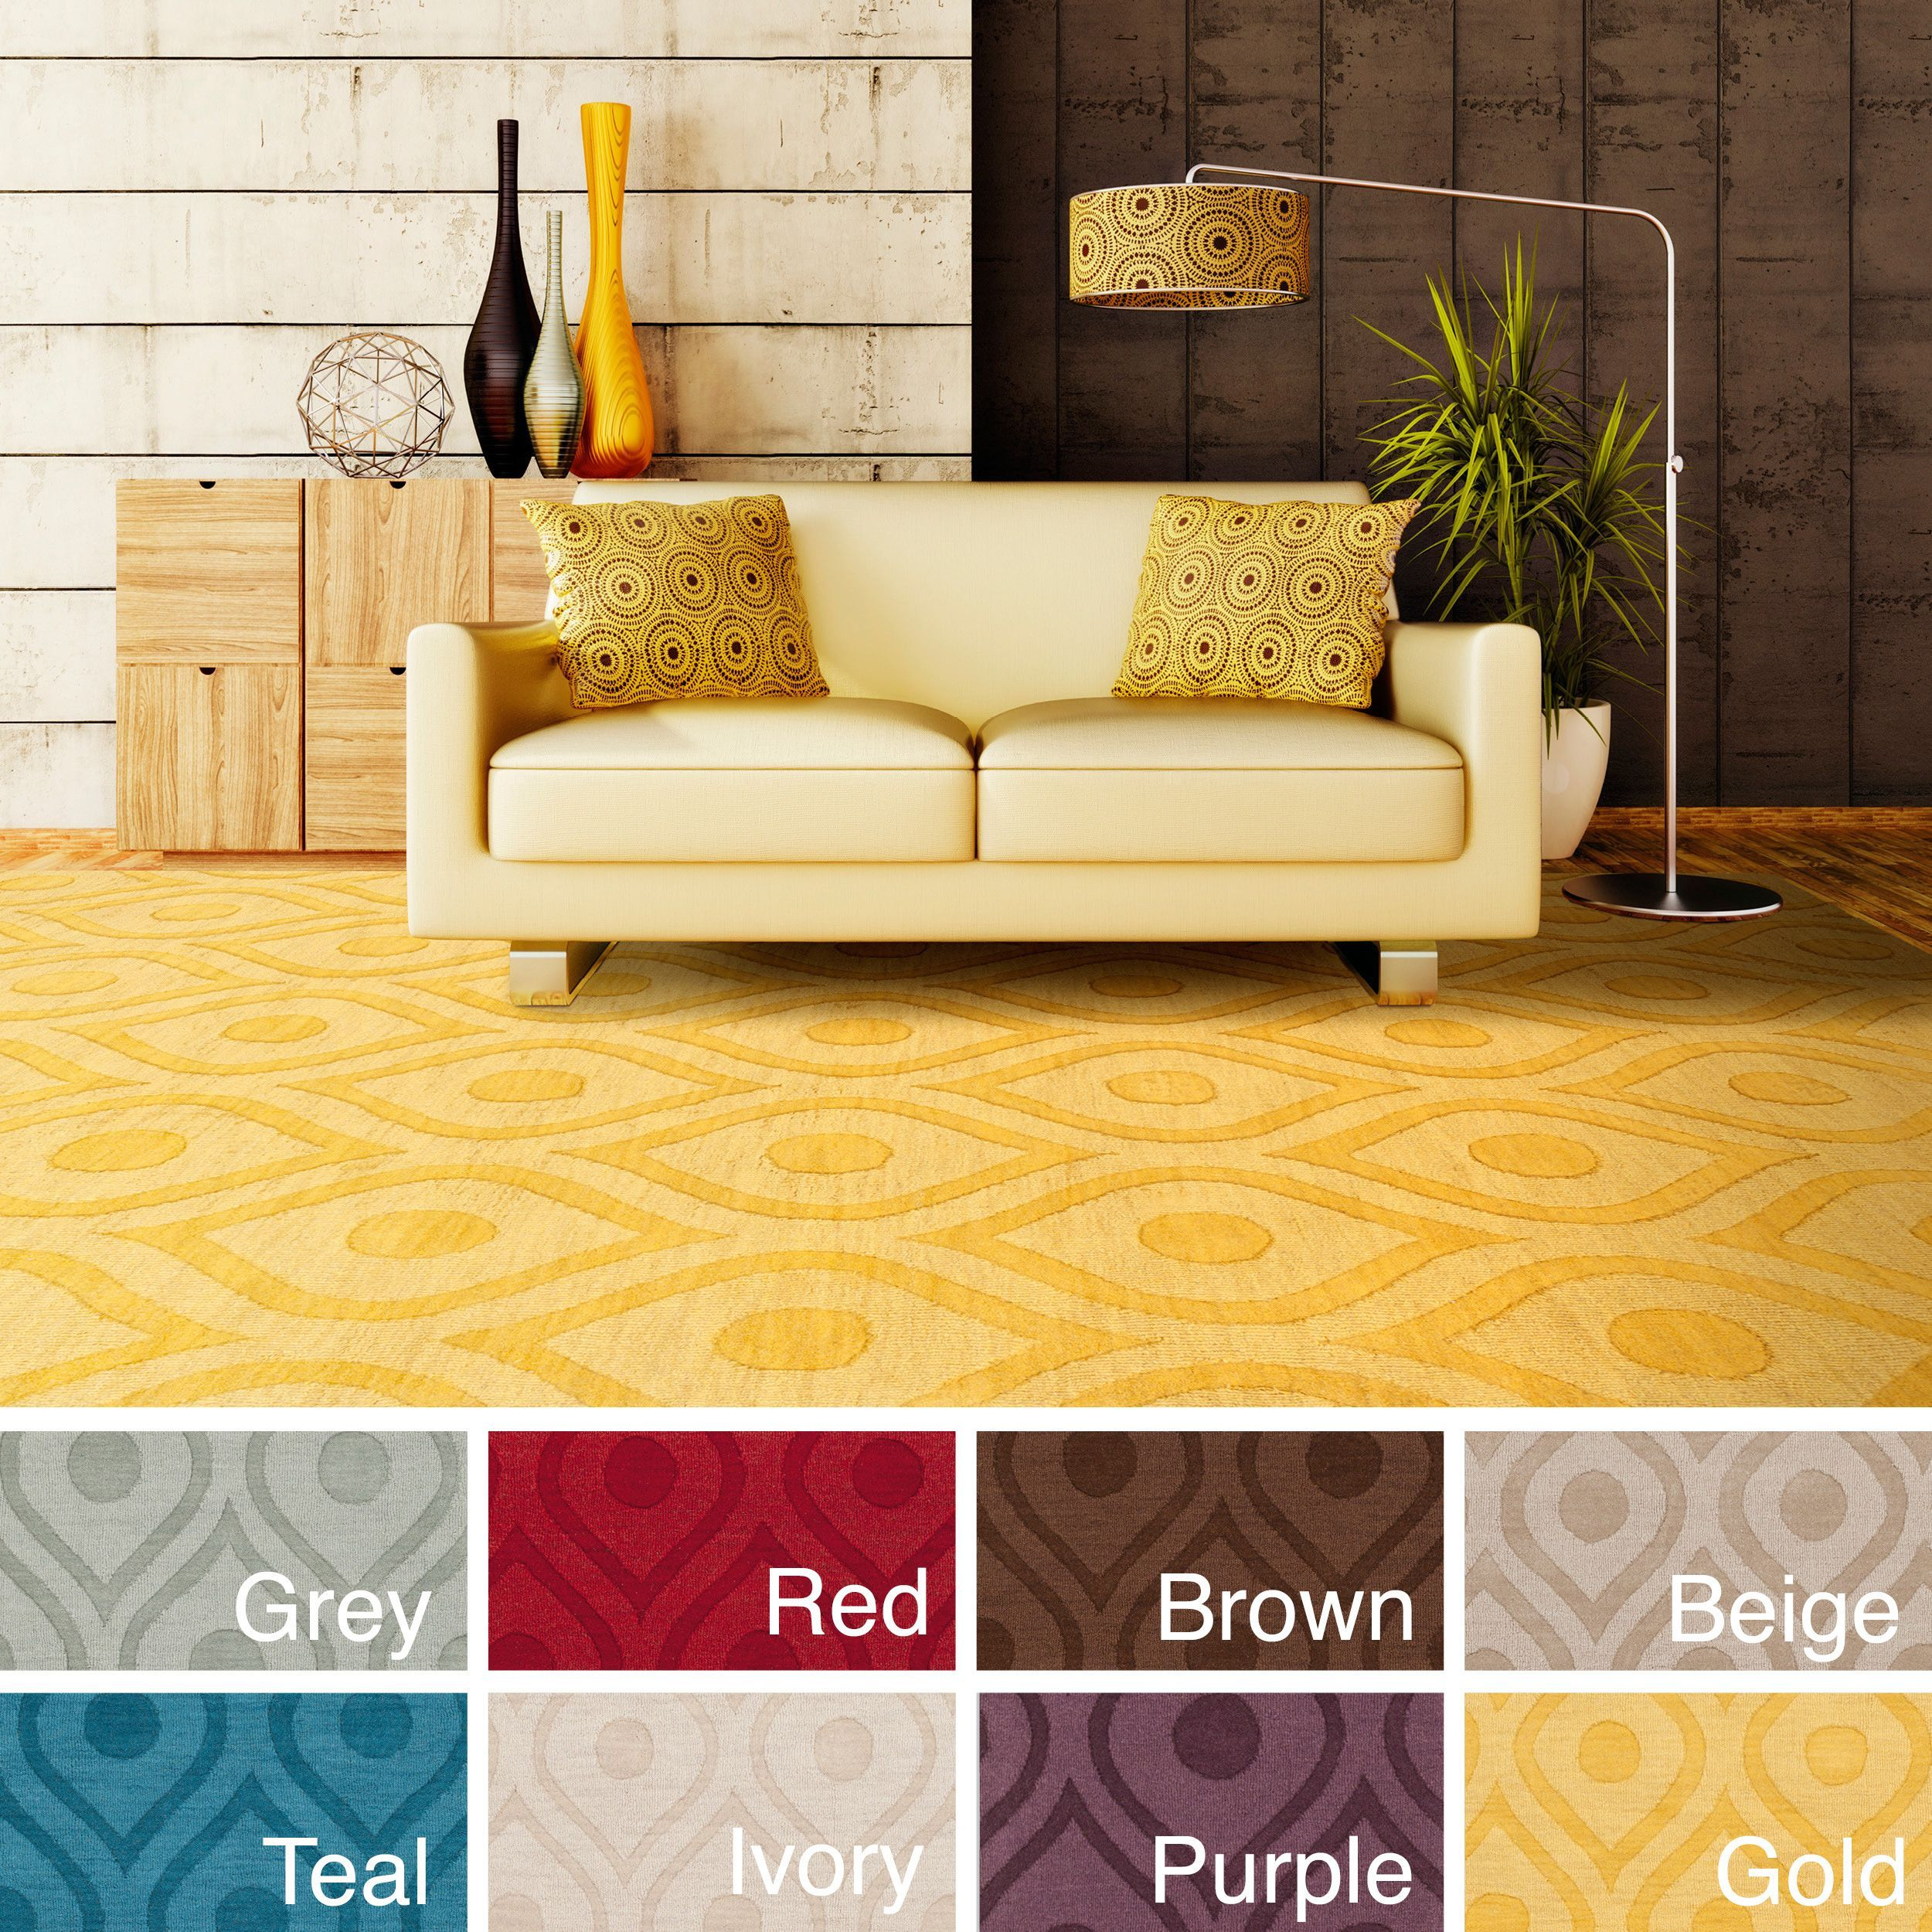 Add bold style to your decor with this tone-on-tone geometric ...